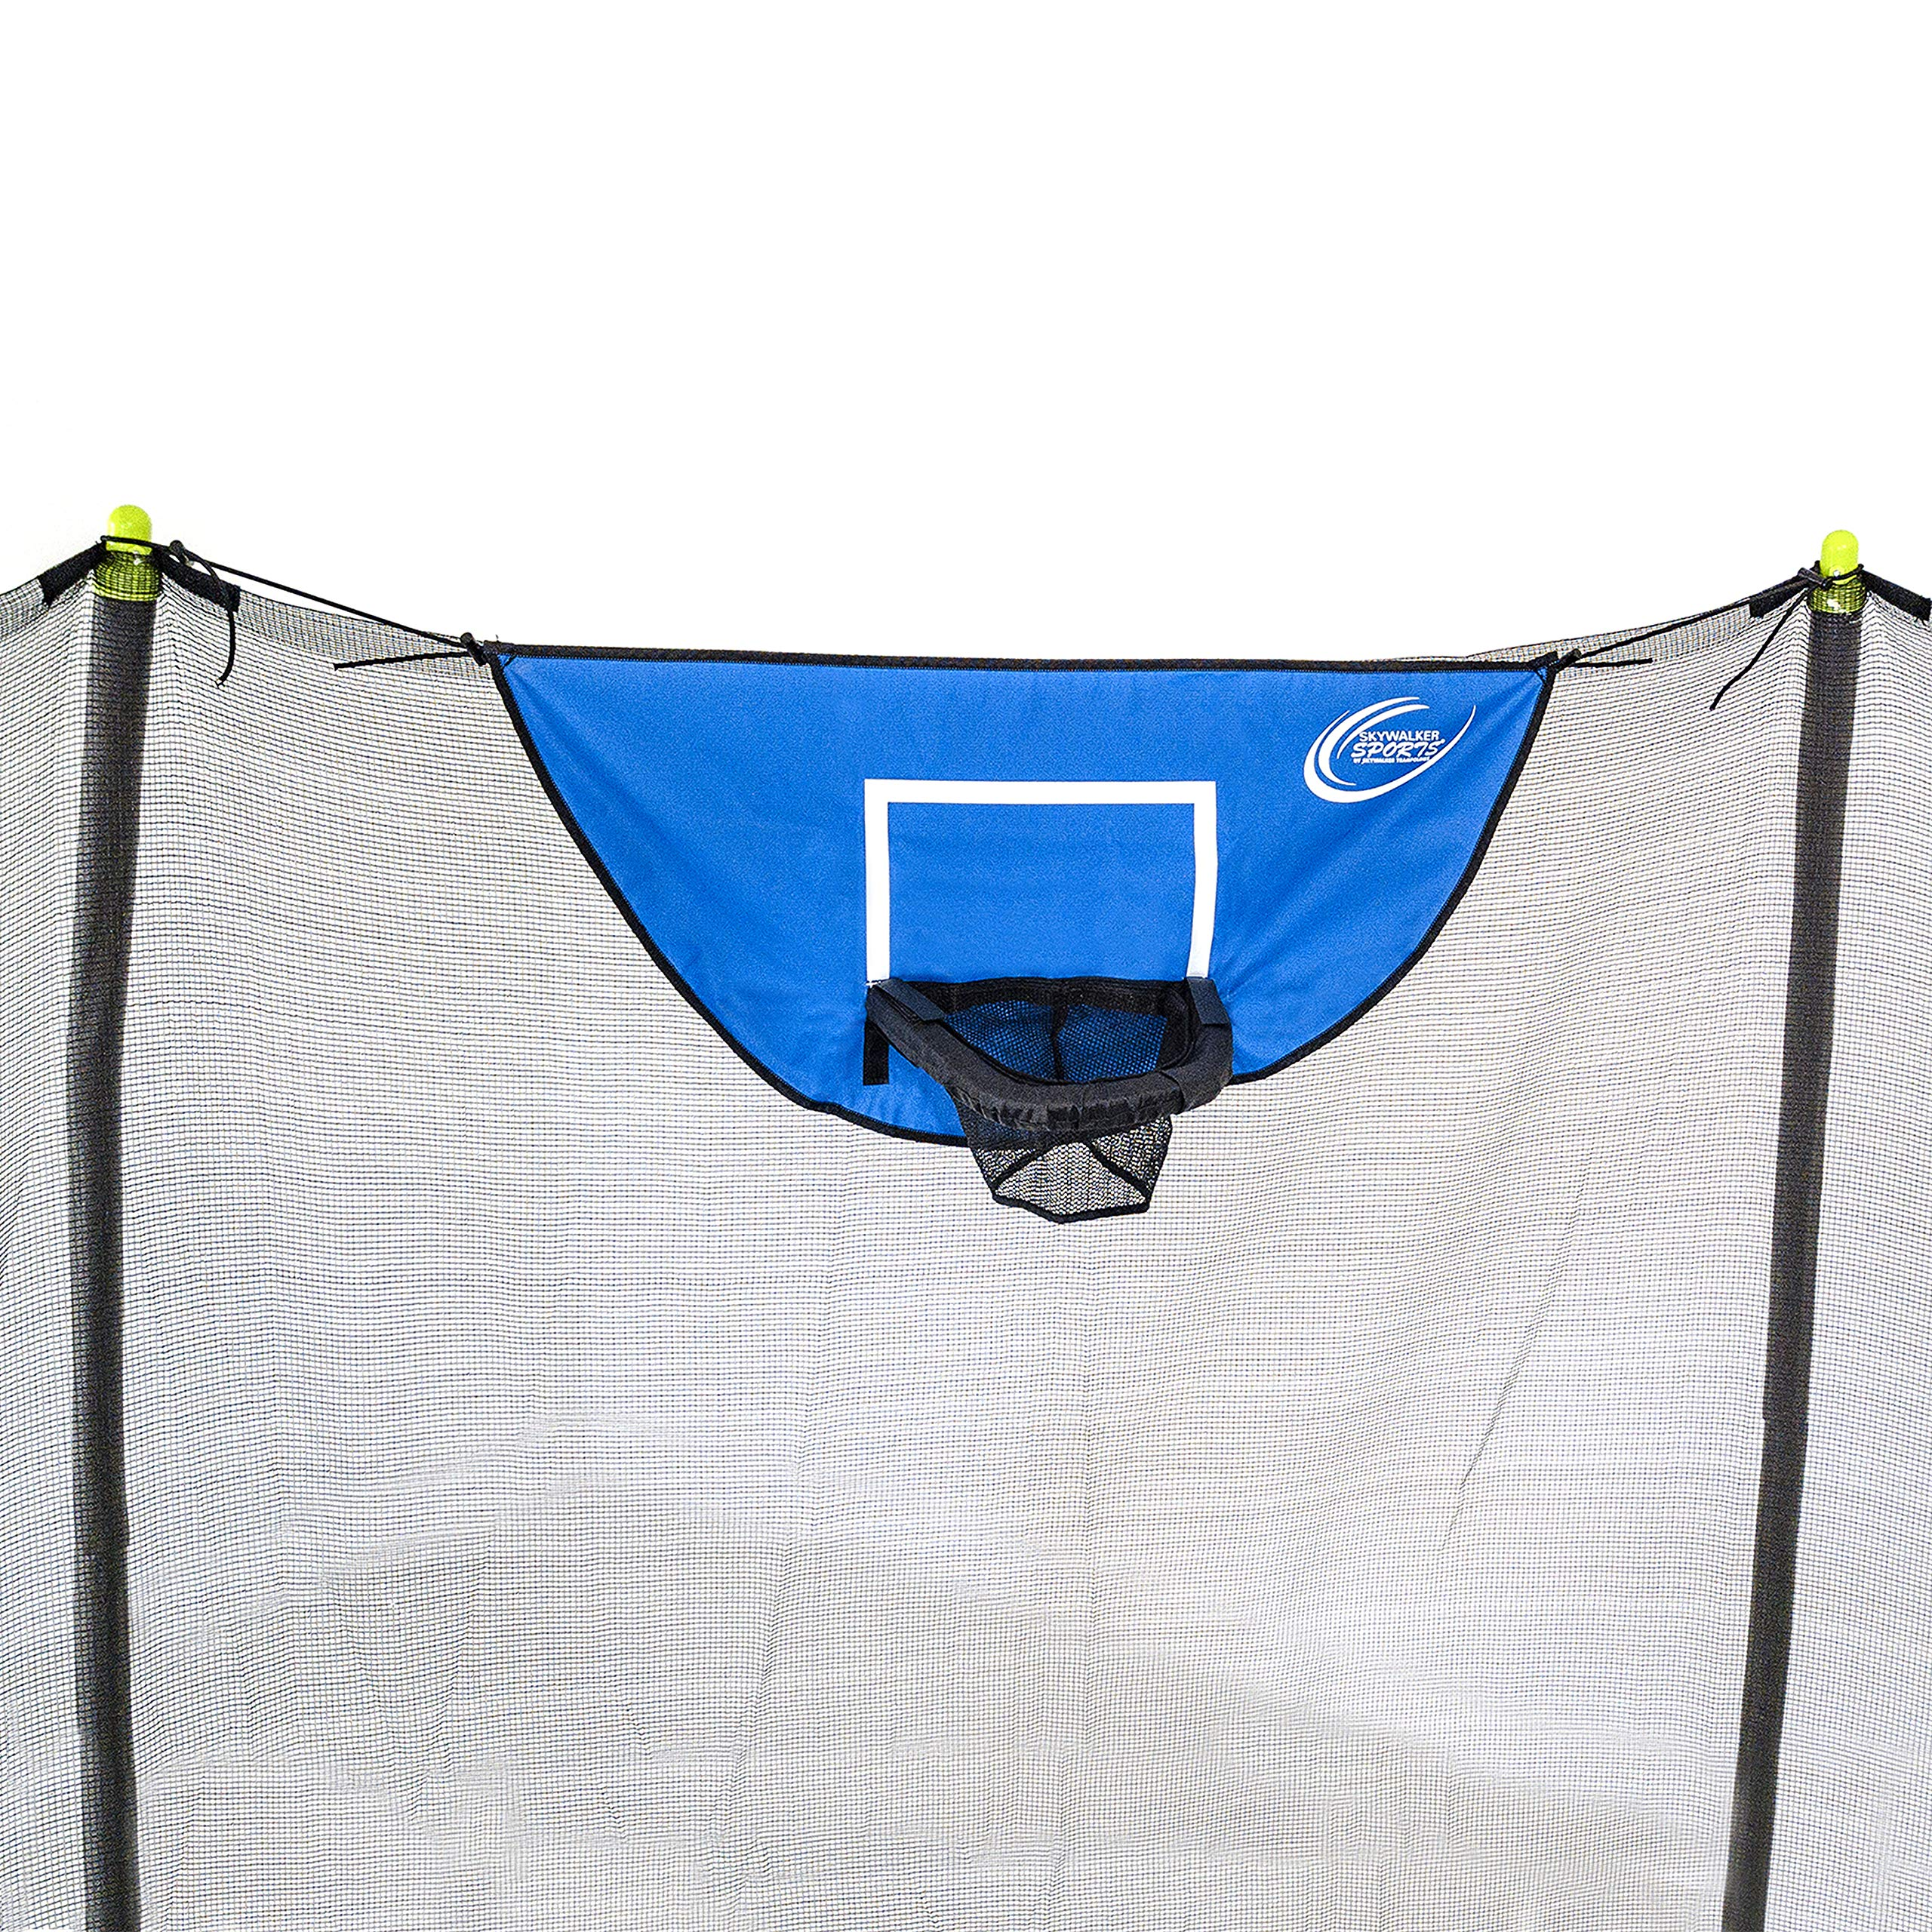 NEW Skywalker Trampolines Basketball Game